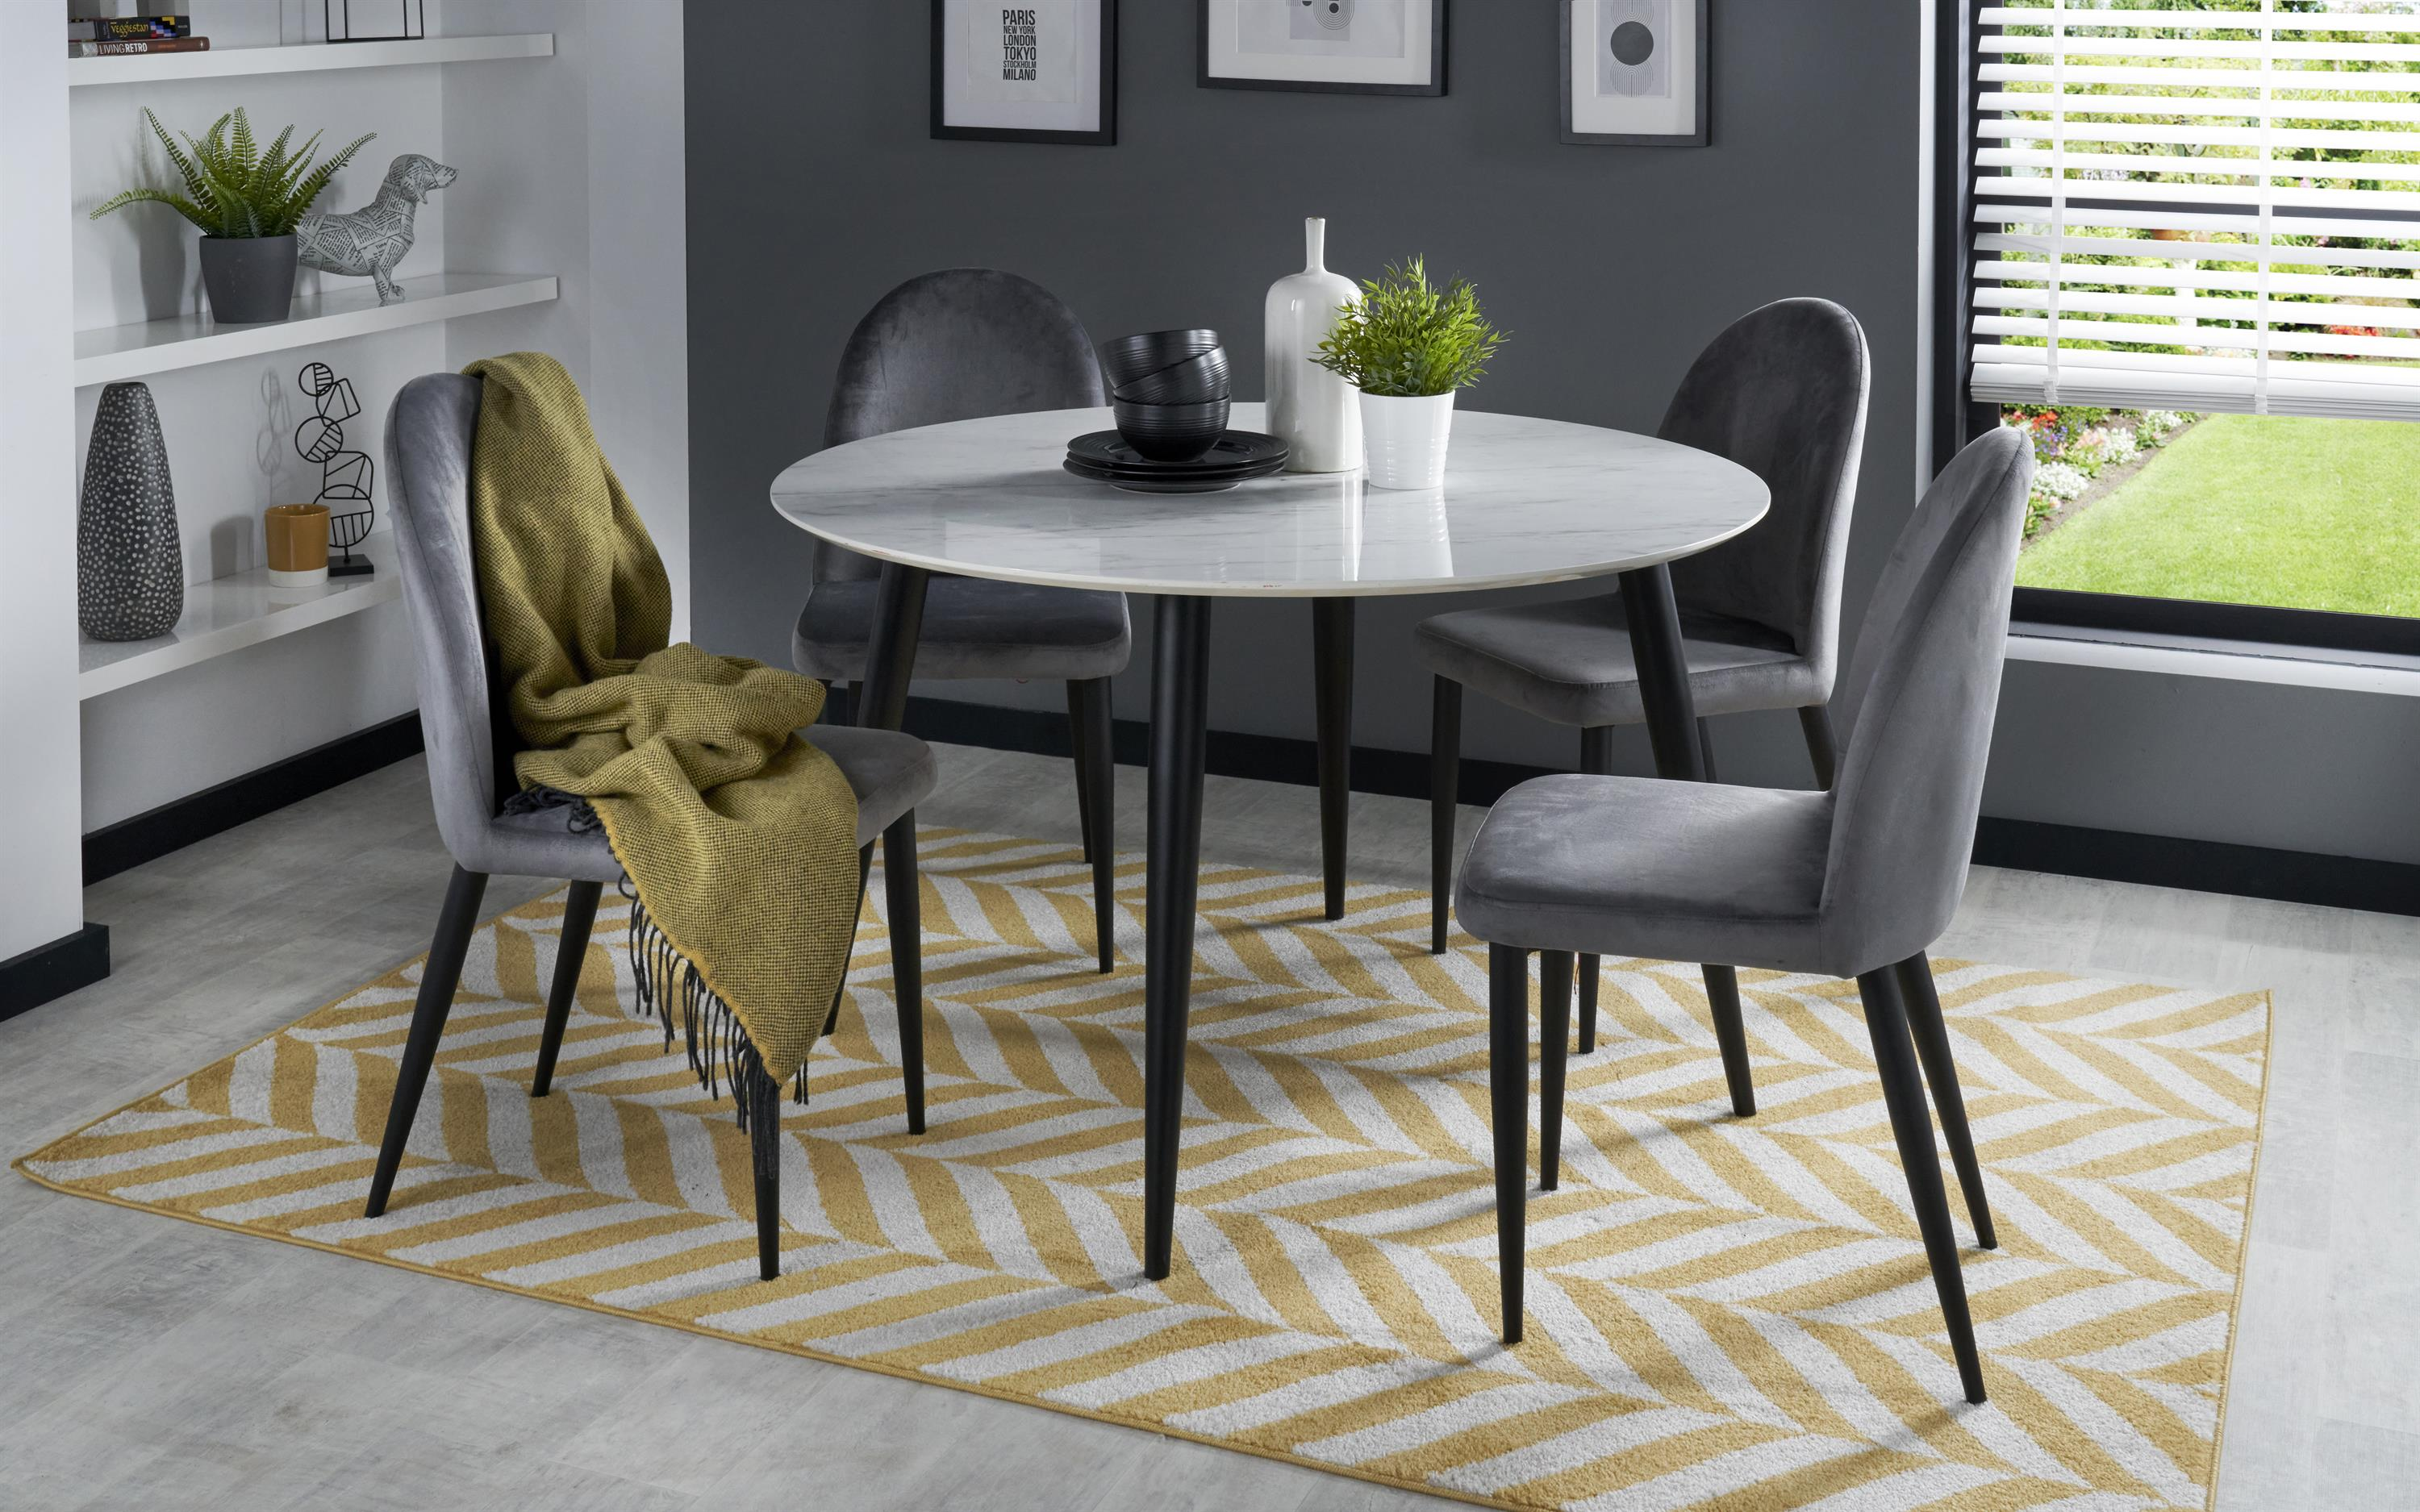 Milano Dining Table & 4 Chairs, , large